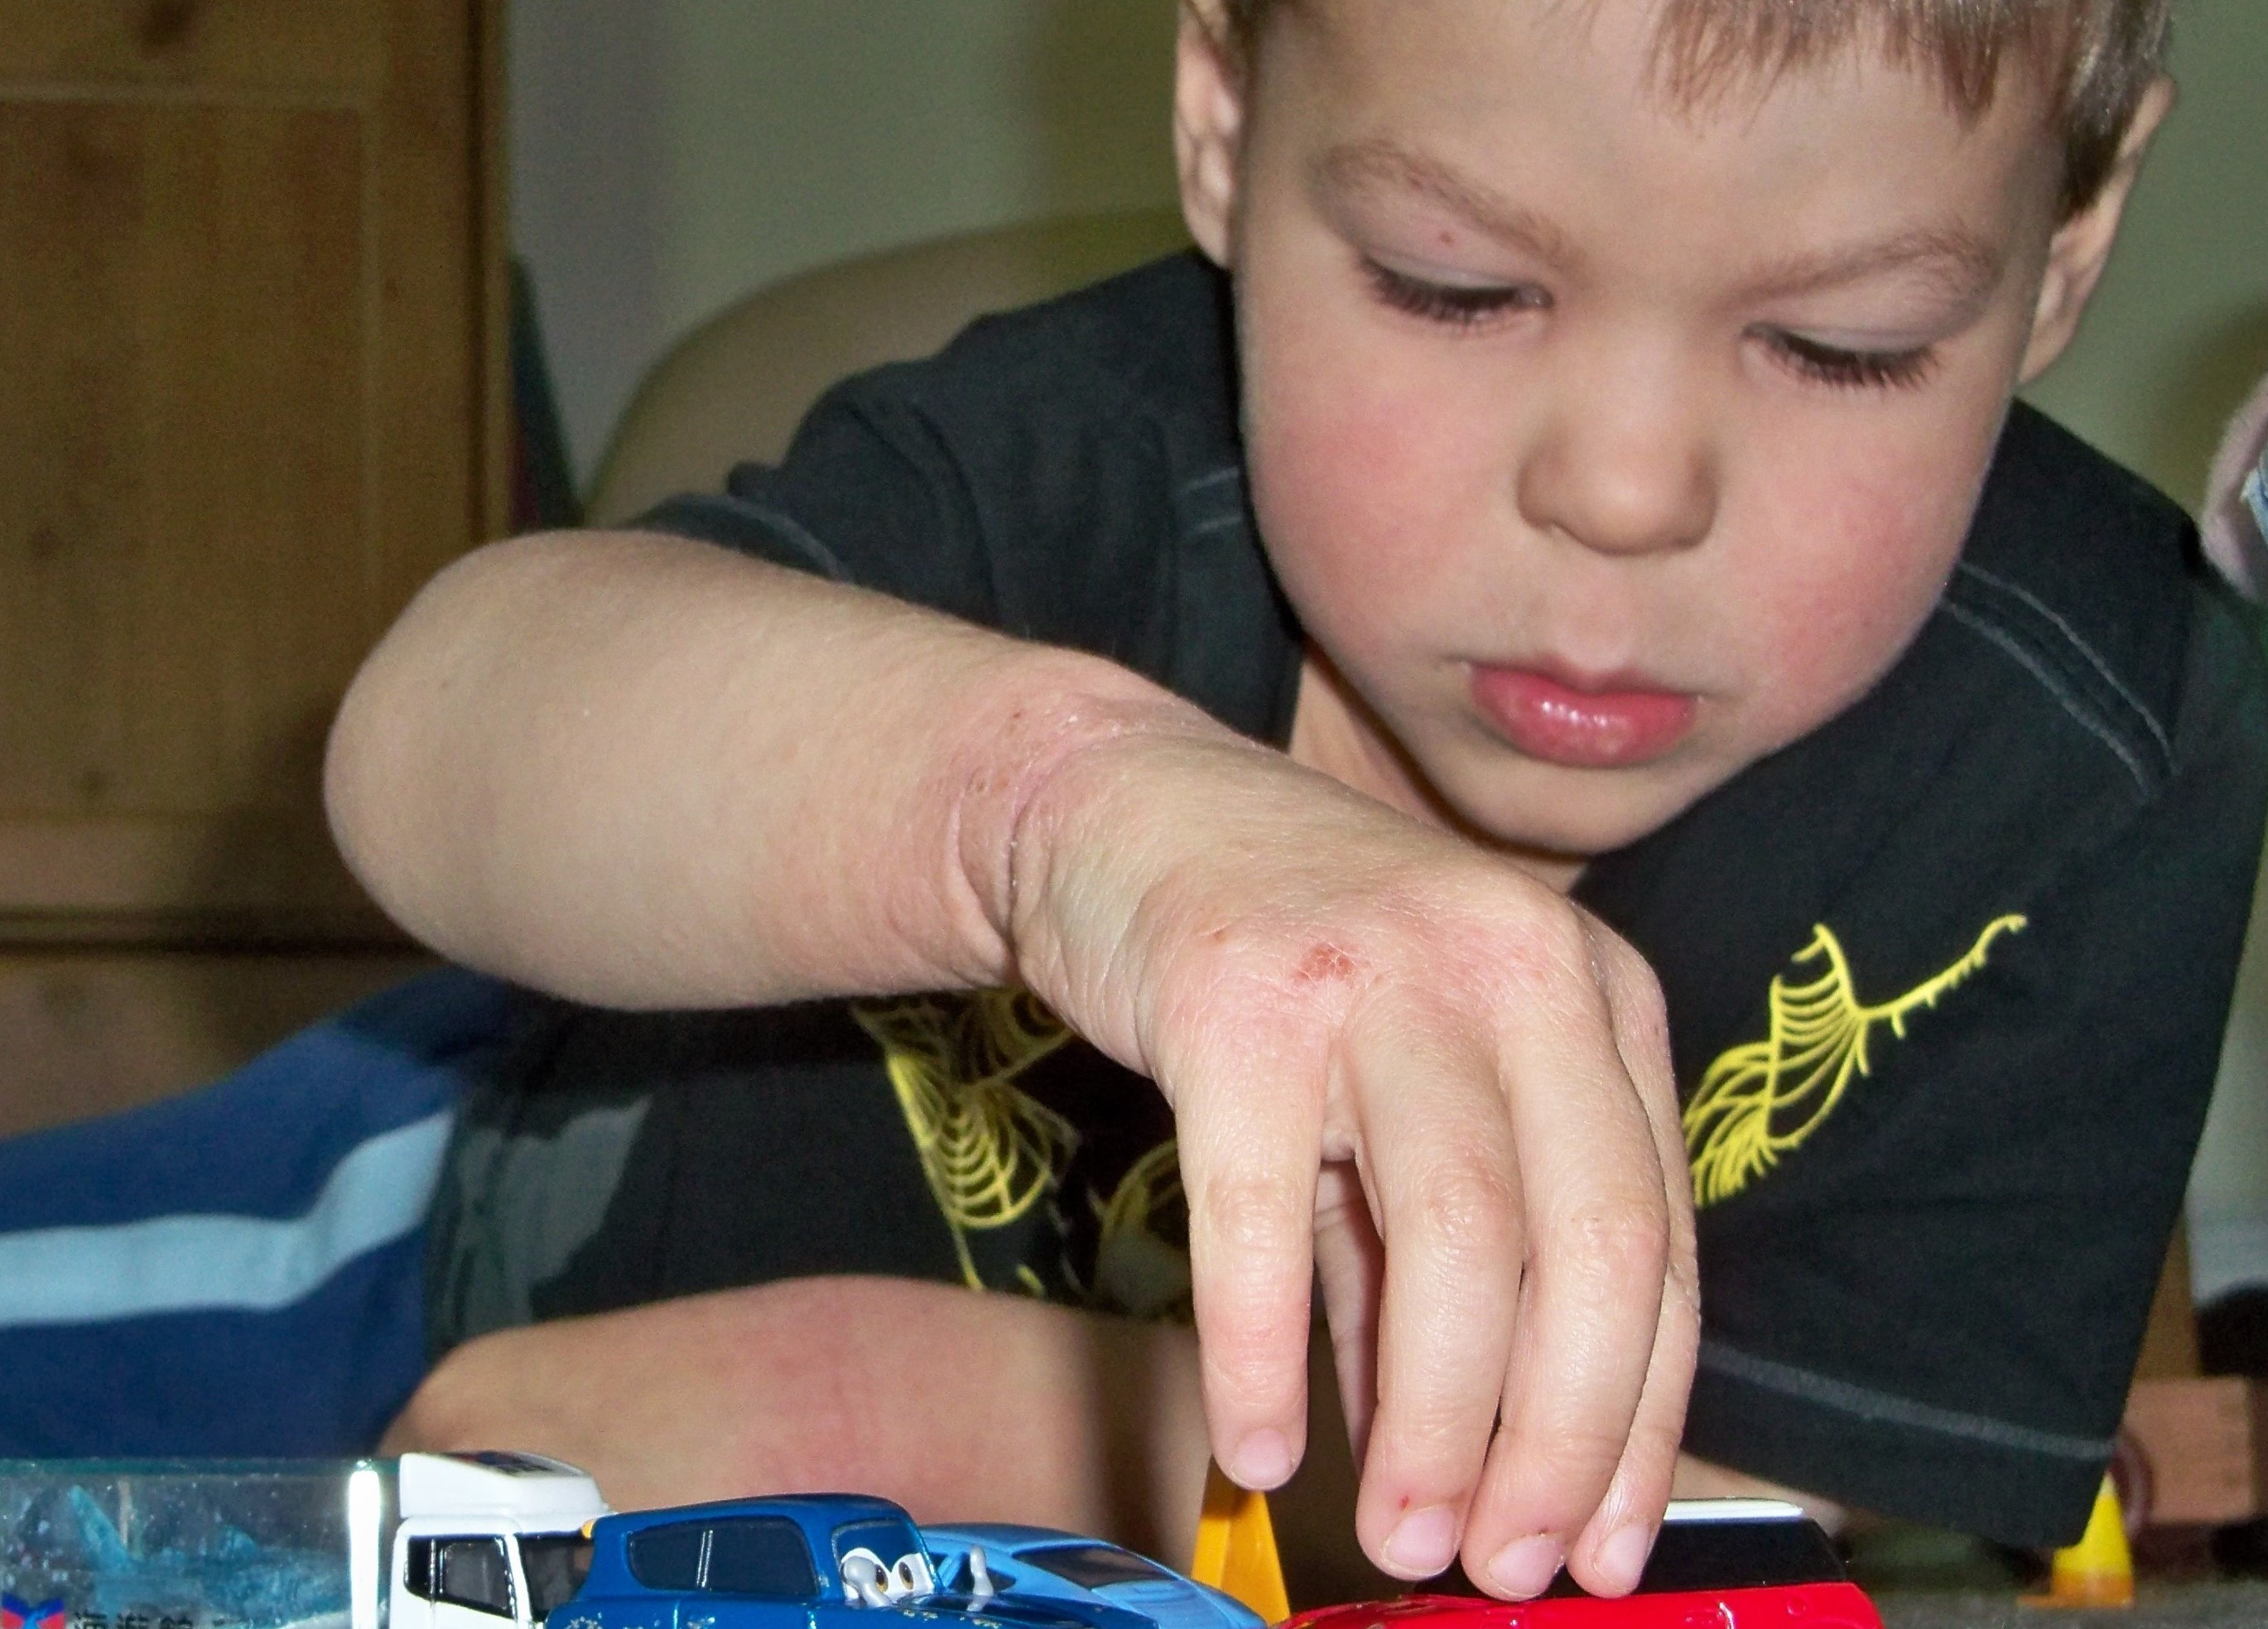 Jennifer Roberg's son with eczema